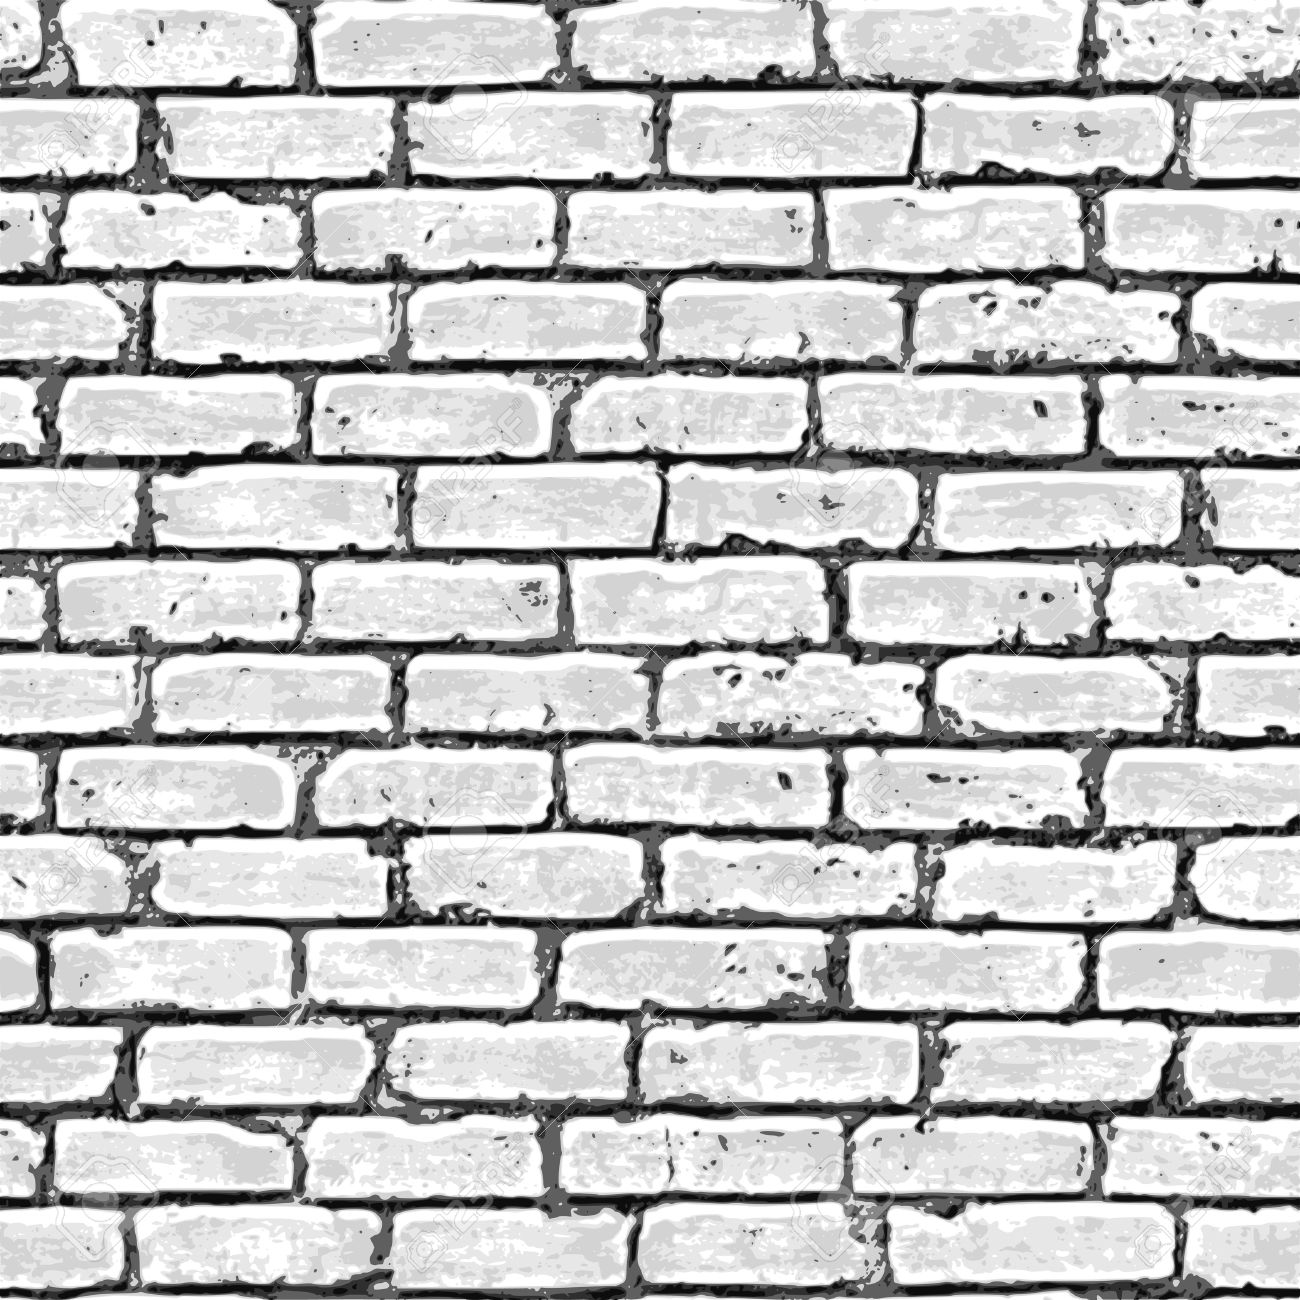 Block wall clipart png royalty free download 7,108 Concrete Block Stock Vector Illustration And Royalty Free ... png royalty free download